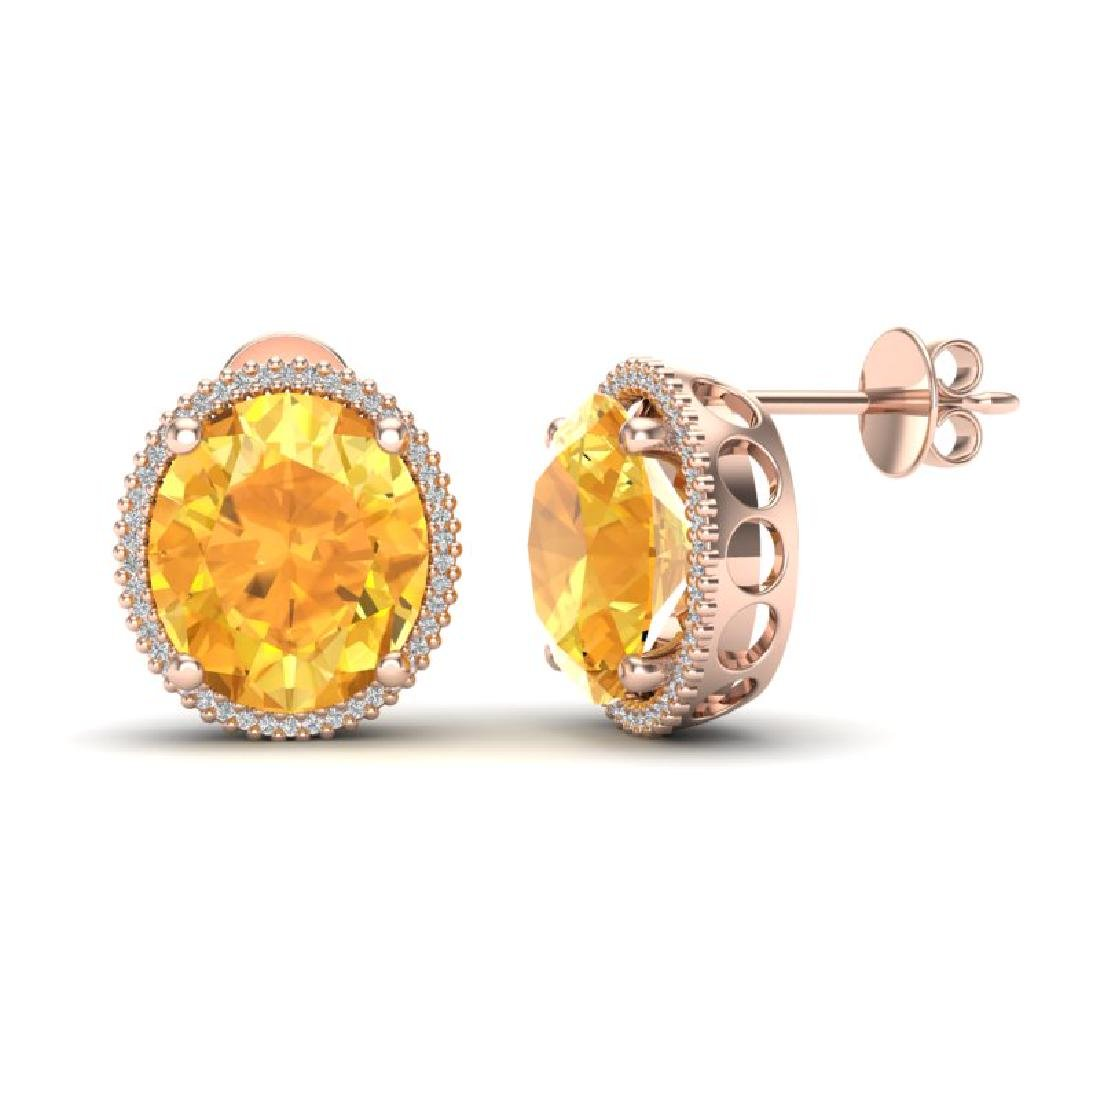 20 CTW Citrine & Micro Pave VS/SI Diamond Halo Earrings - 2